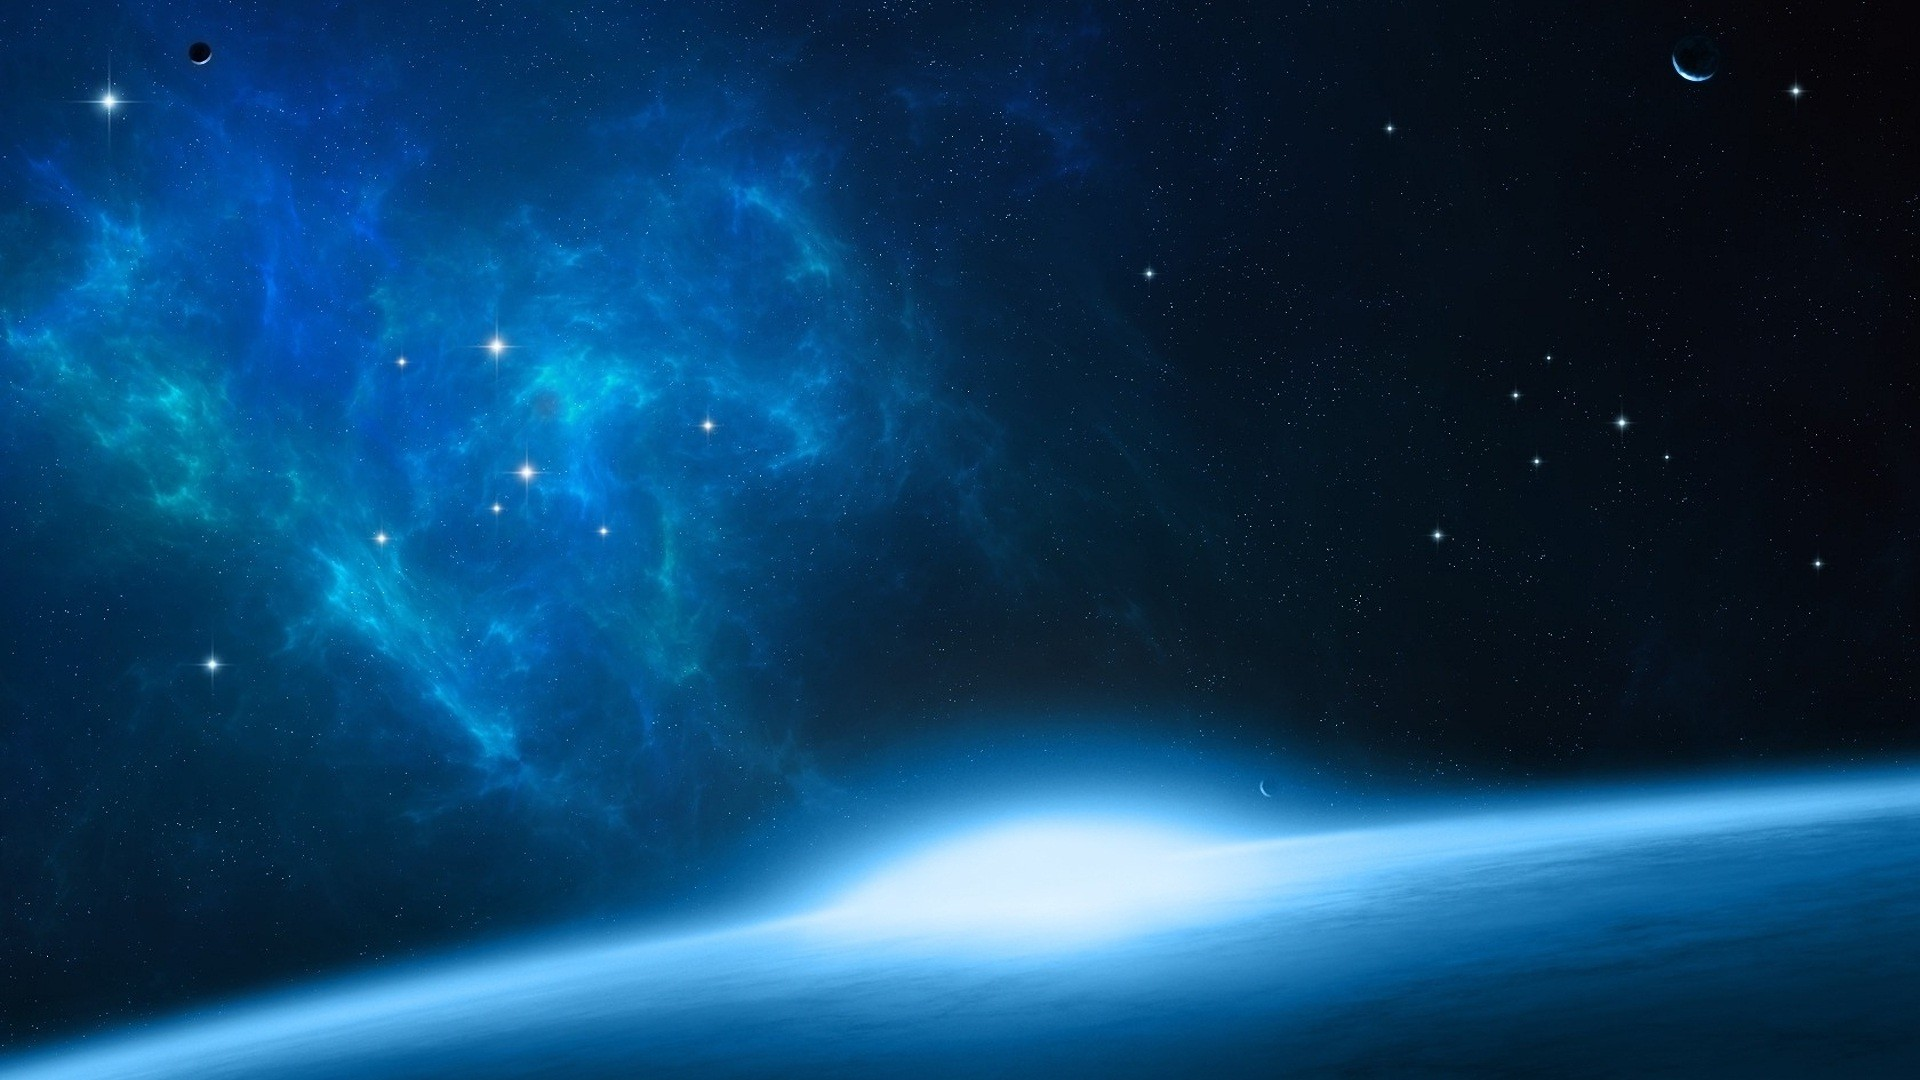 Outer Space wallpaper   783663 1920x1080